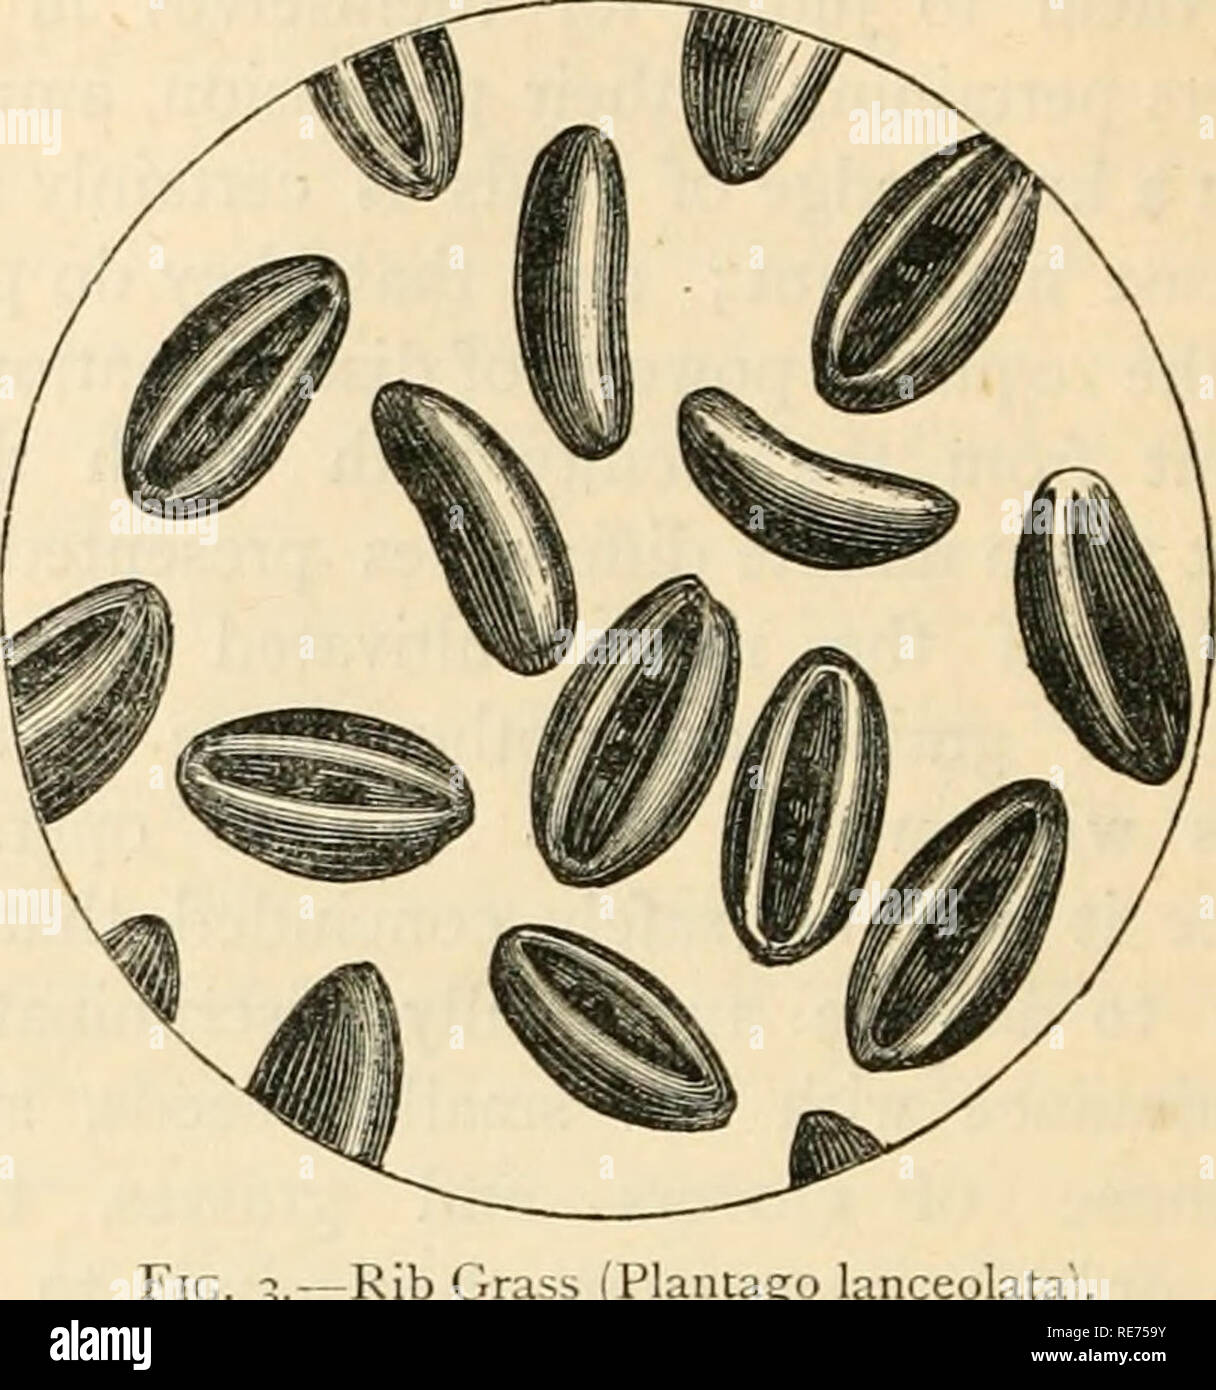 """. The Country gentleman's magazine. Agriculture; Agriculture -- Great Britain. KiG. 2.—Unripe Seeds of Red CI No. 2 represents imperfectly ripened seeds of red clover, enclosed in their still adhering husks. These, as shewn in the engraving, resemble small acorns with their cups at- tached ; and in sample, they are so unlike the seeds of any of our field weeds that many were present in about the proportion of six per cent. No. 3 exhibits difterent views of the rib-. go lanceolata"""". grass, common ril^wort, or plantain seed— Plantago lanceolata—magnified on the same scale as the others. Thi - Stock Image"""